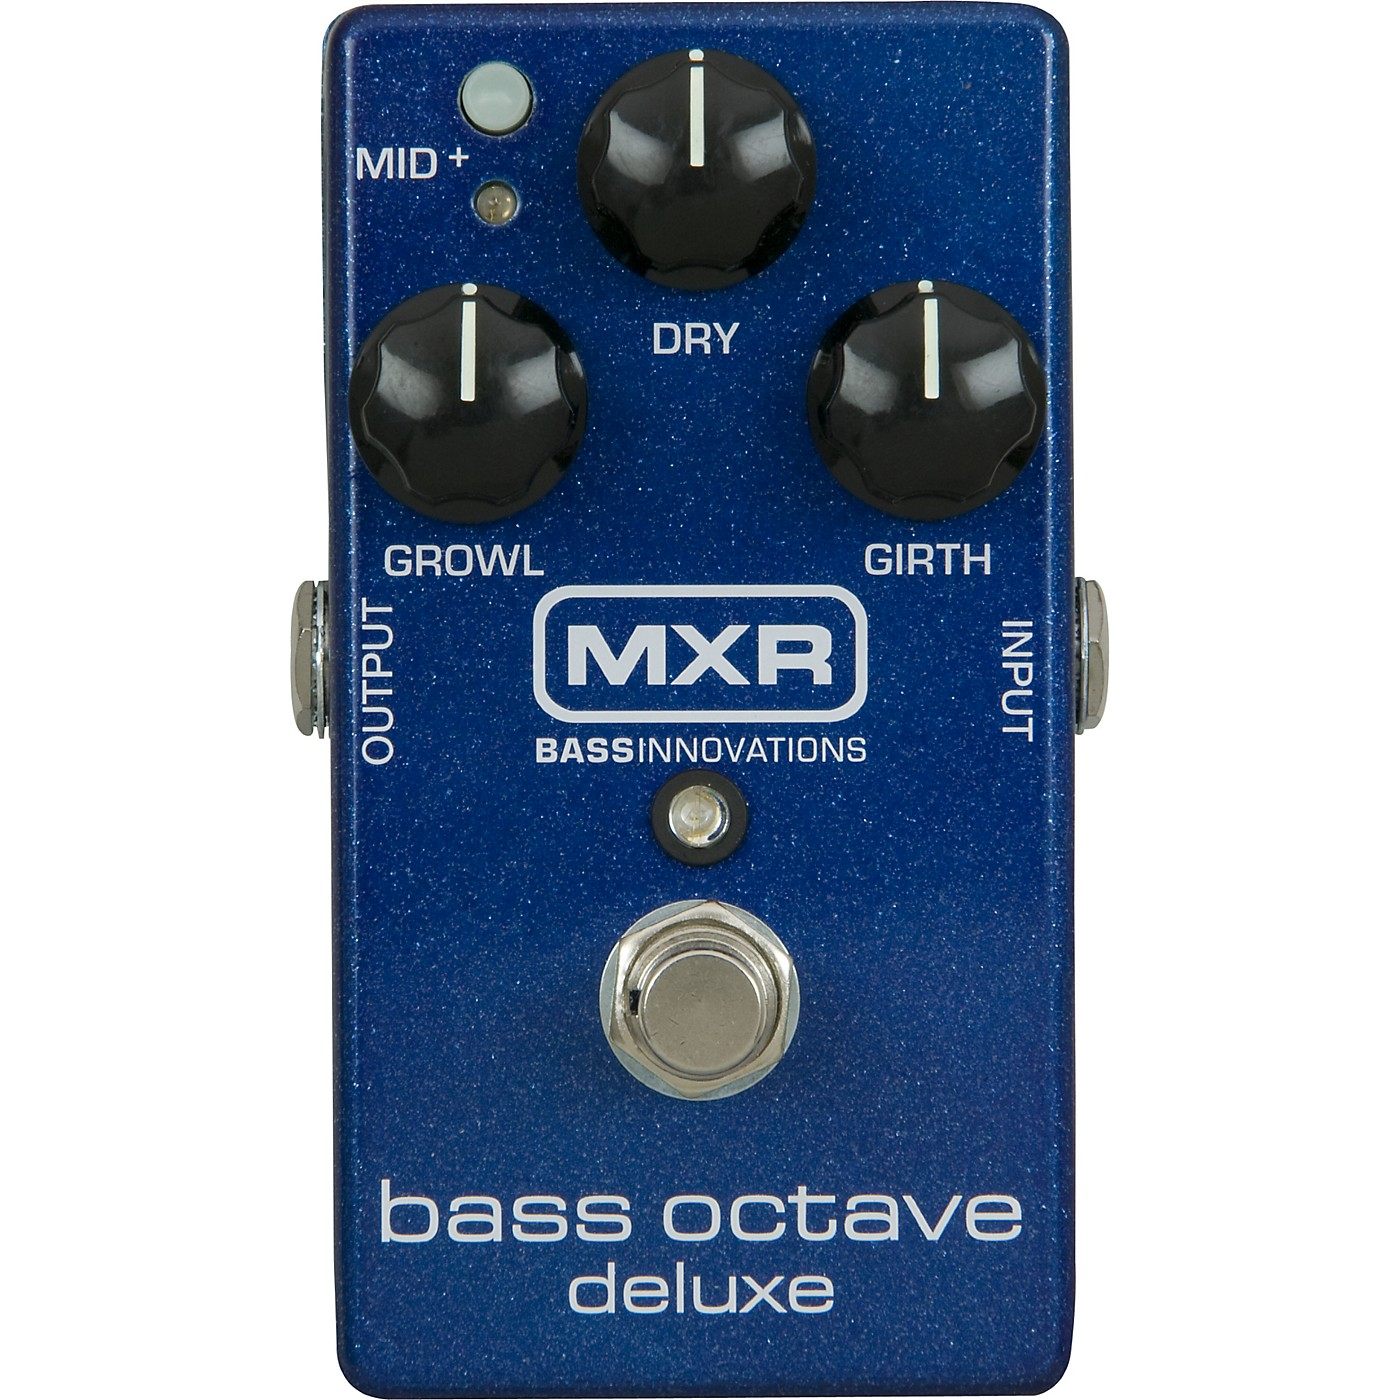 MXR M288 Bass Octave Deluxe Effects Pedal thumbnail